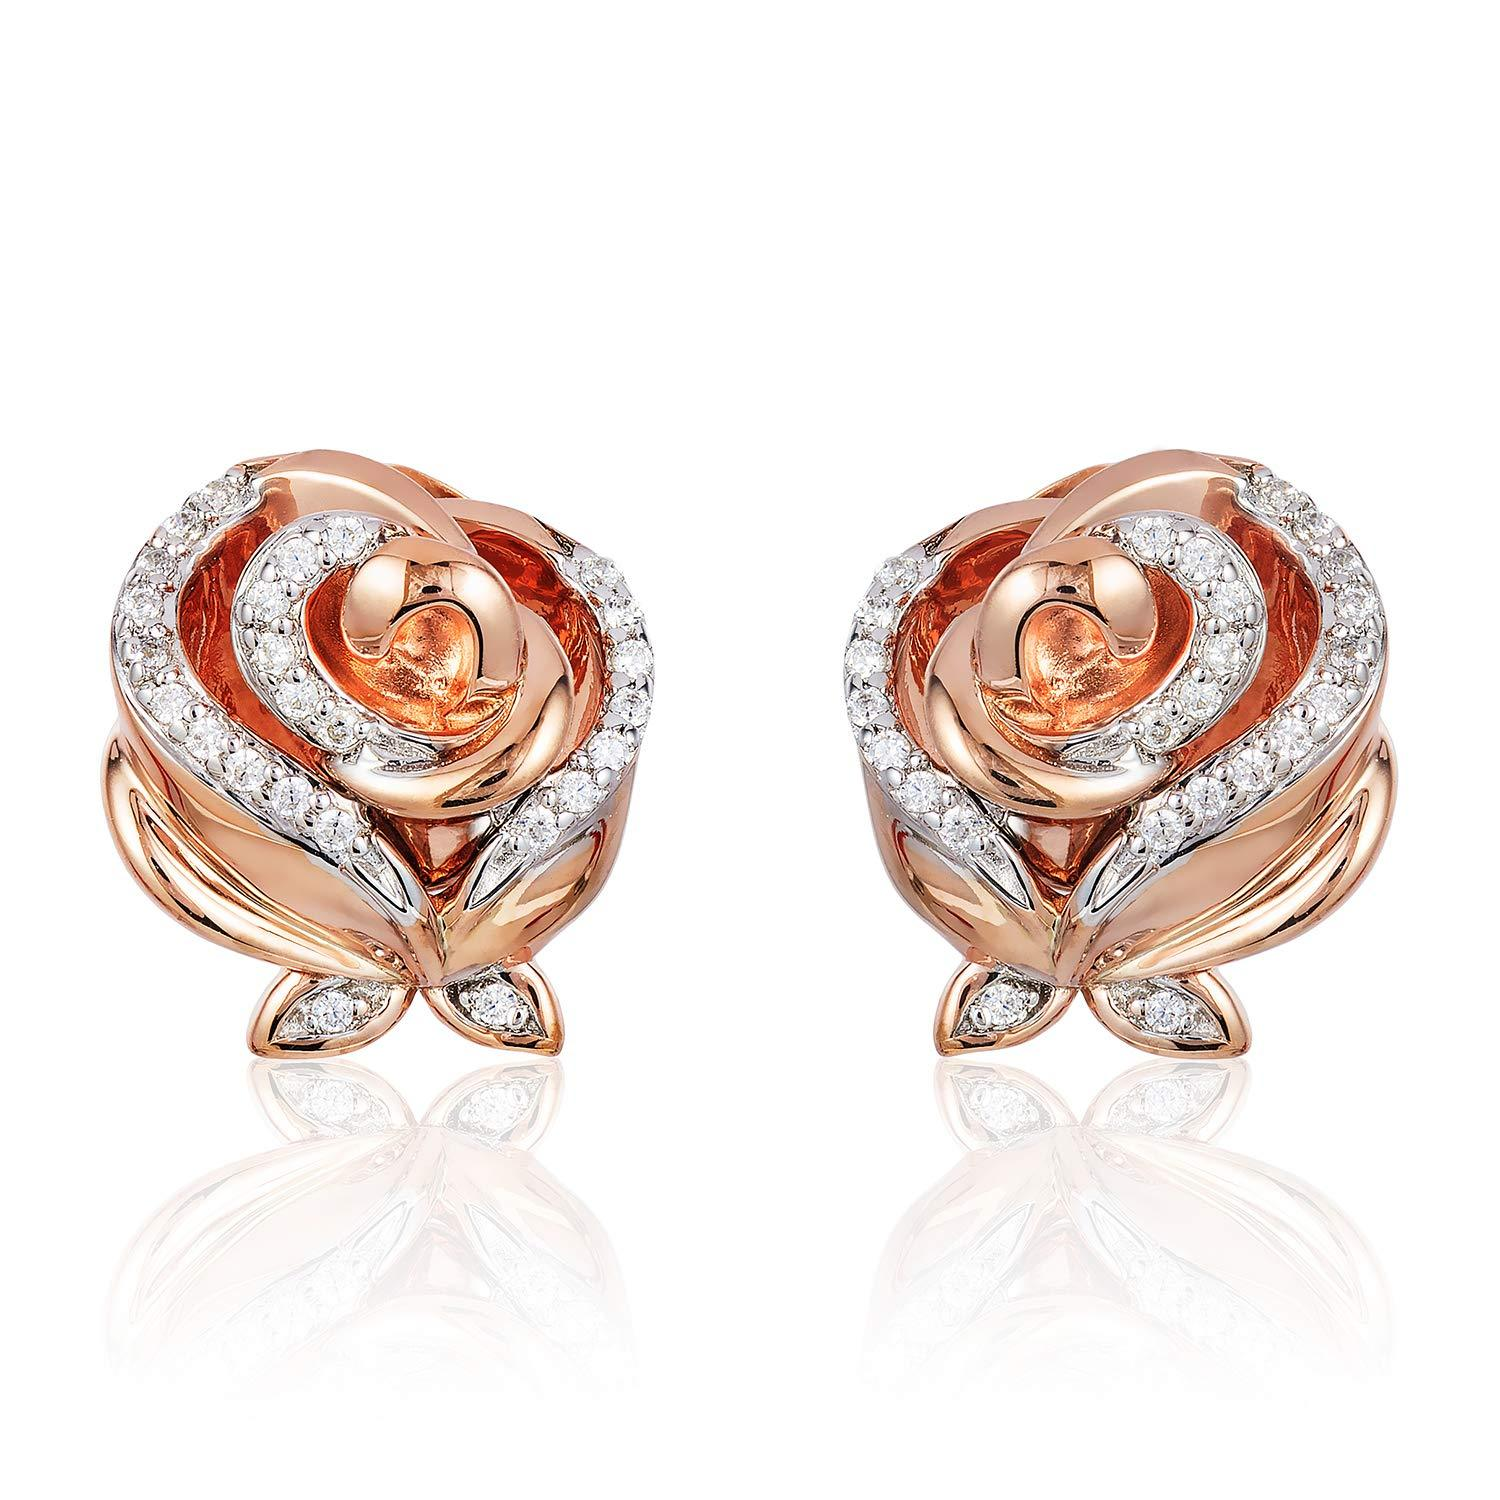 enchanted_disney-belle_earrings-10k_rose_gold_1/8CTTW_1